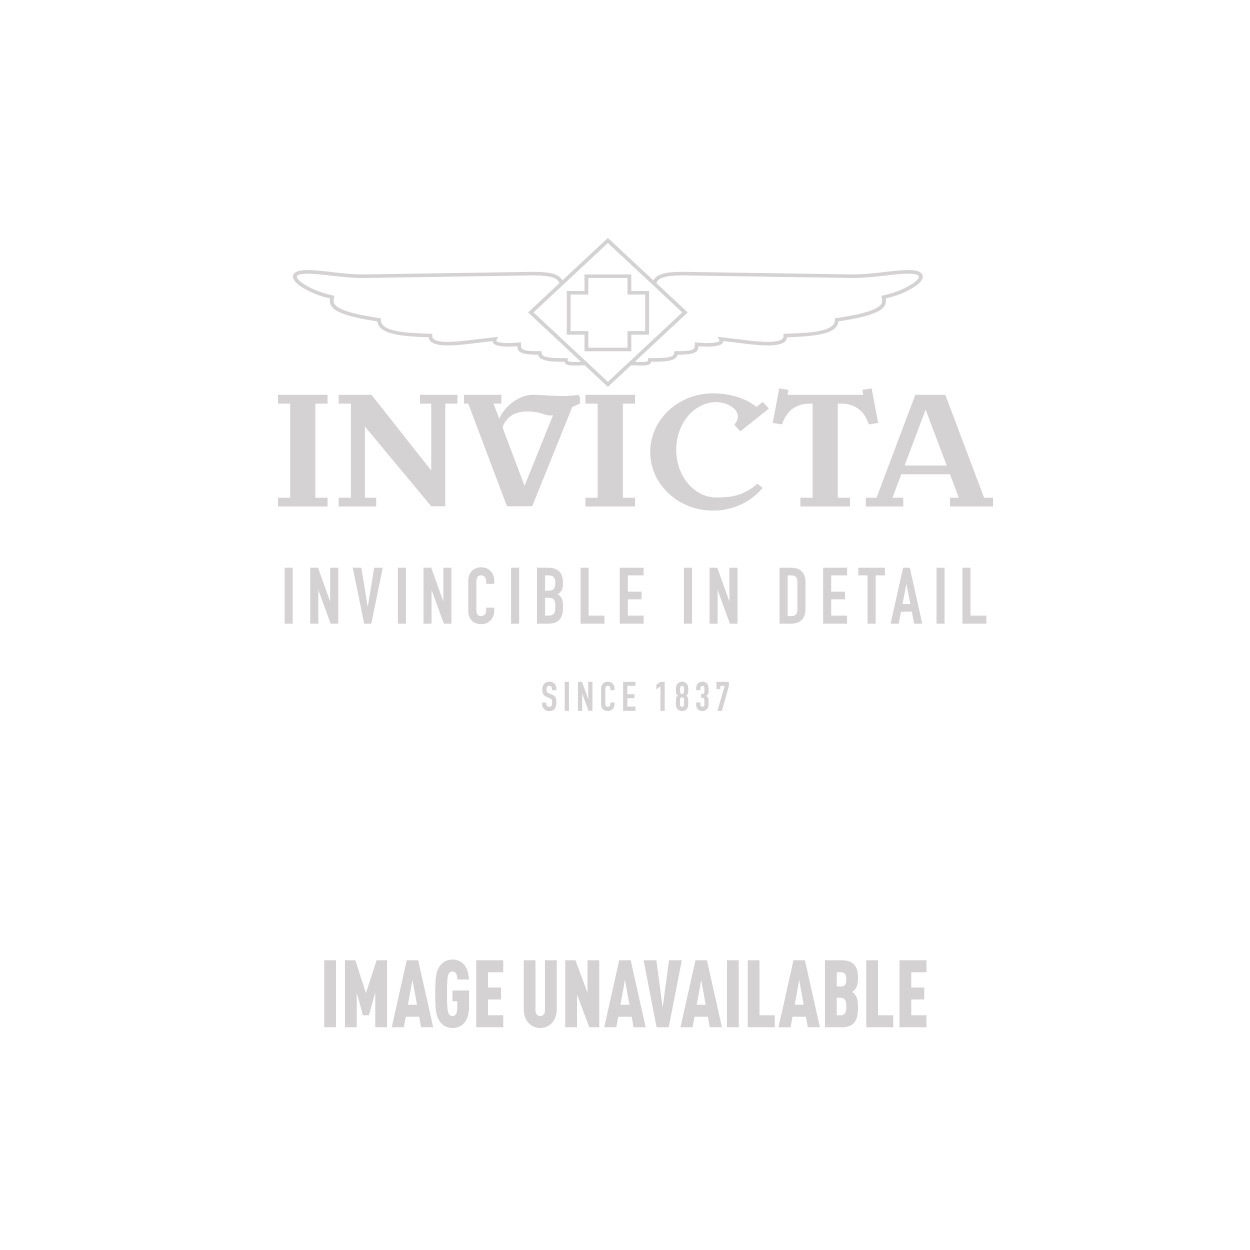 Invicta S. Coifman Swiss Movement Quartz Watch - Rose Gold case with White tone Leather band - Model SC0330